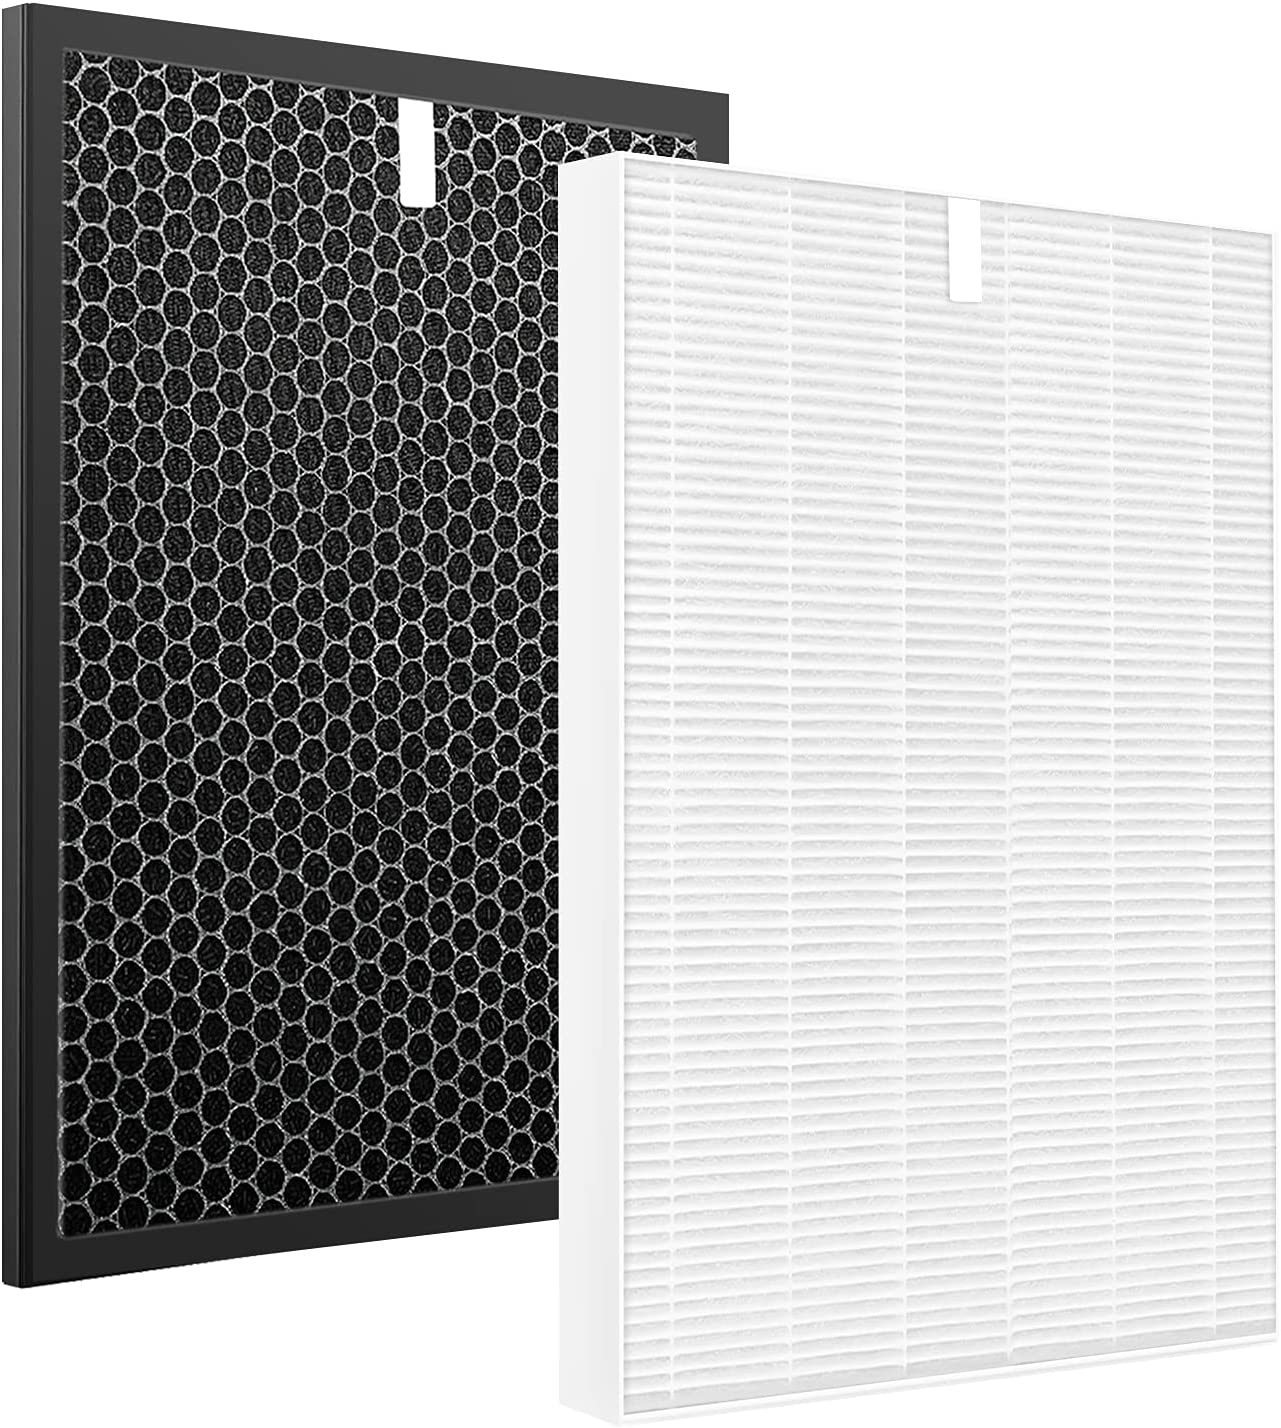 iSingo Ranking TOP11 HR900 Replacement Filter Compatible P Air Winix for SALENEW very popular!